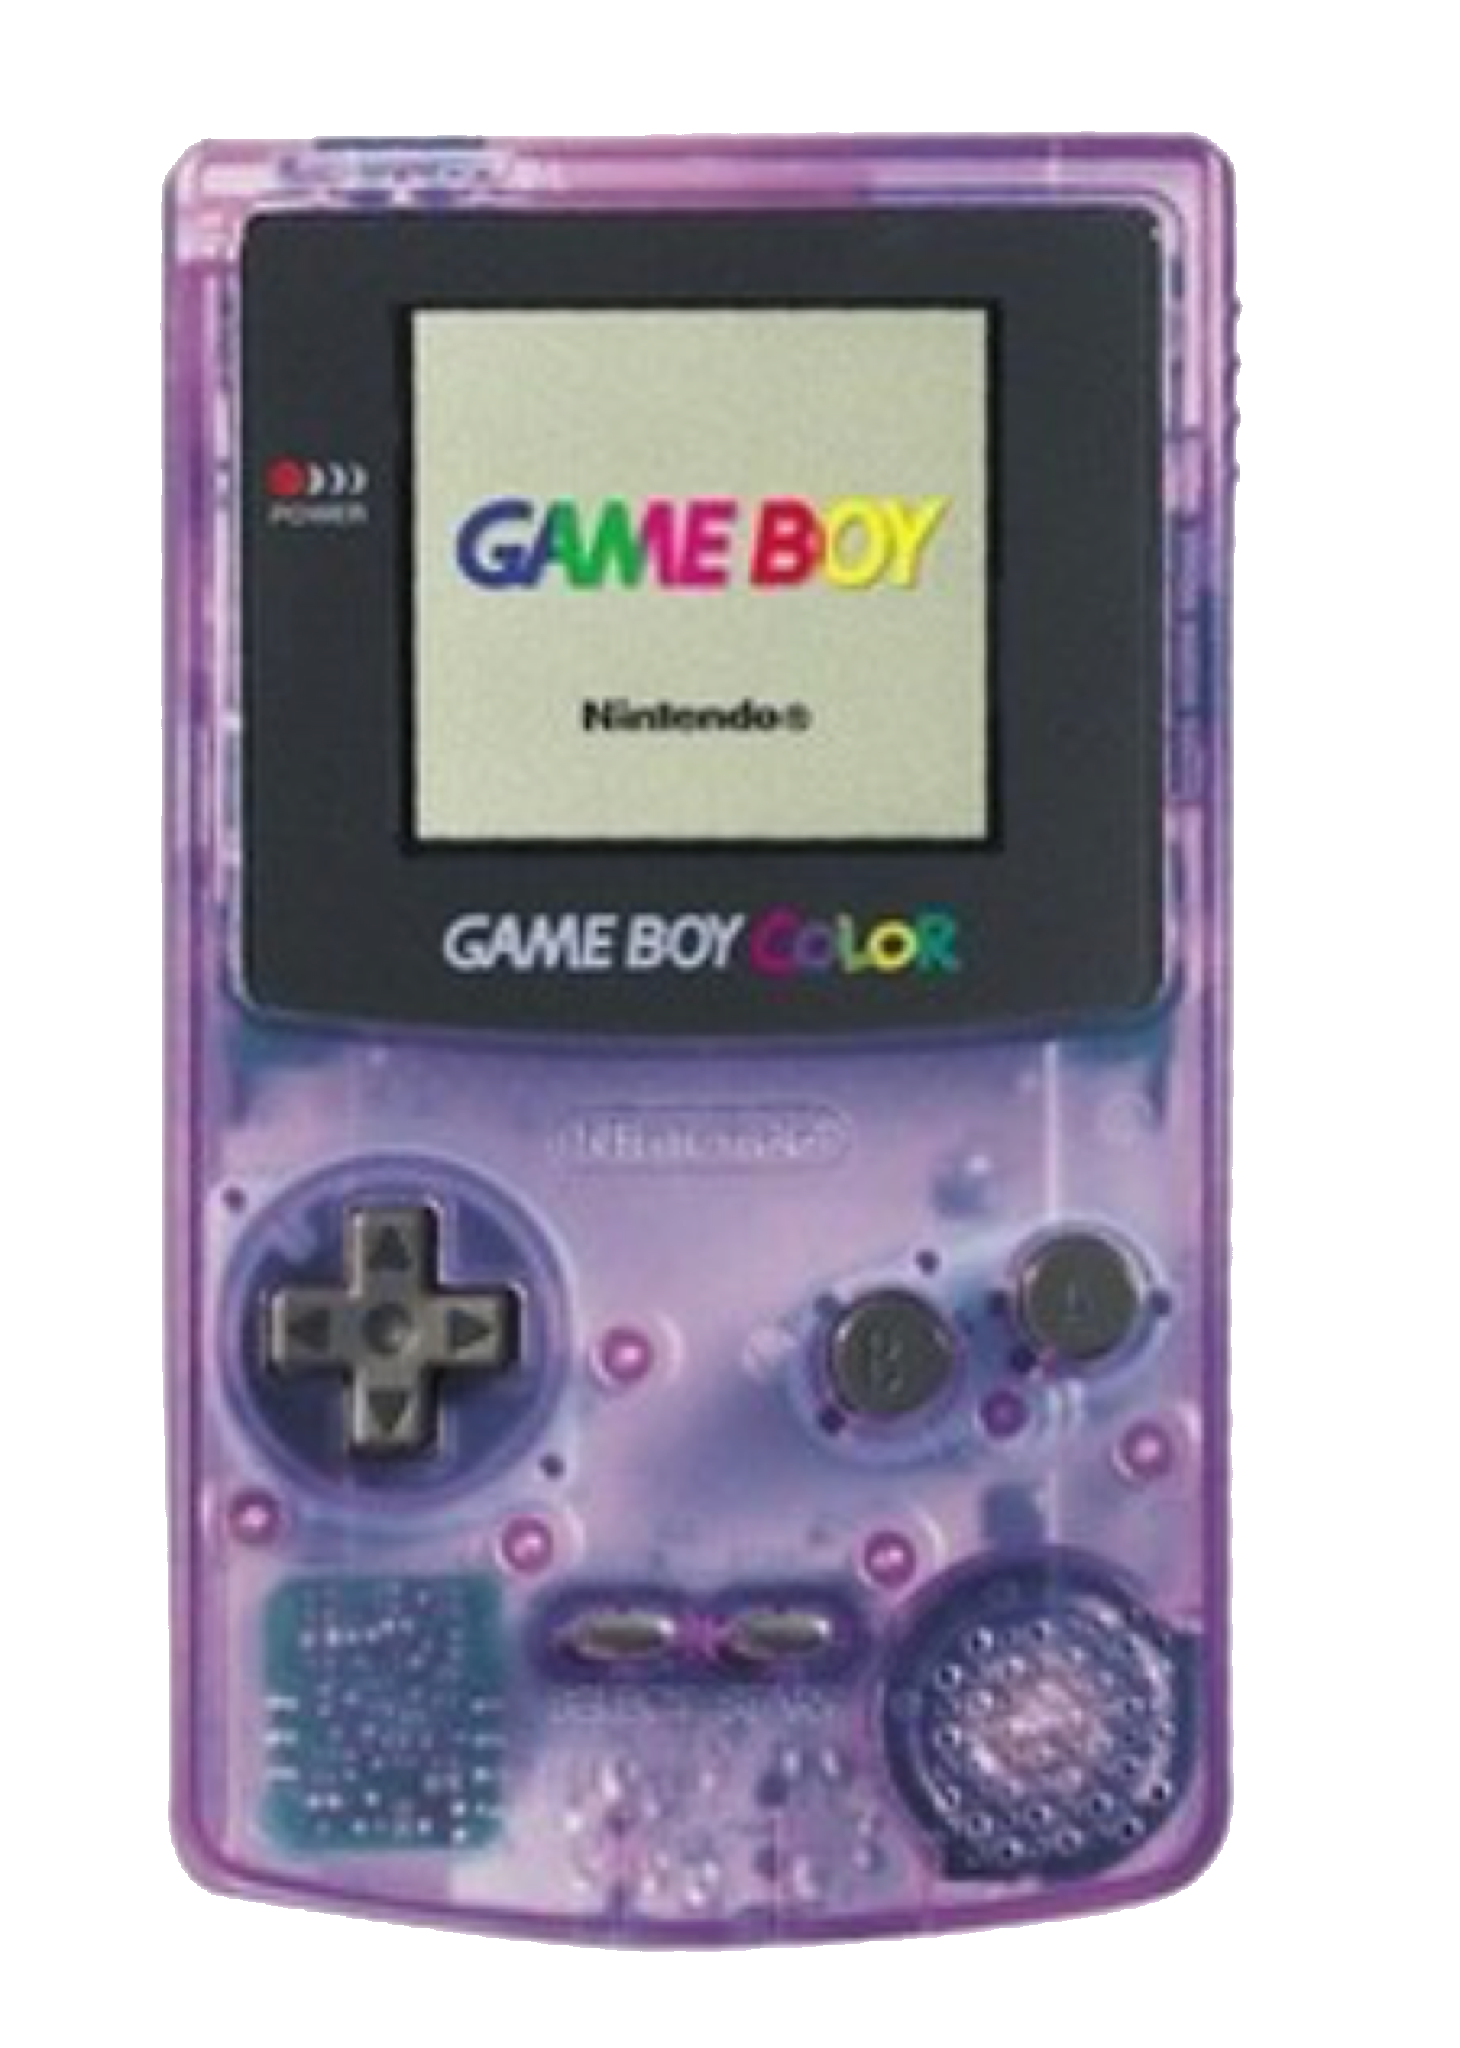 Pin By Emily Willis On Pngs Gameboy Purple Games Retro Video Games